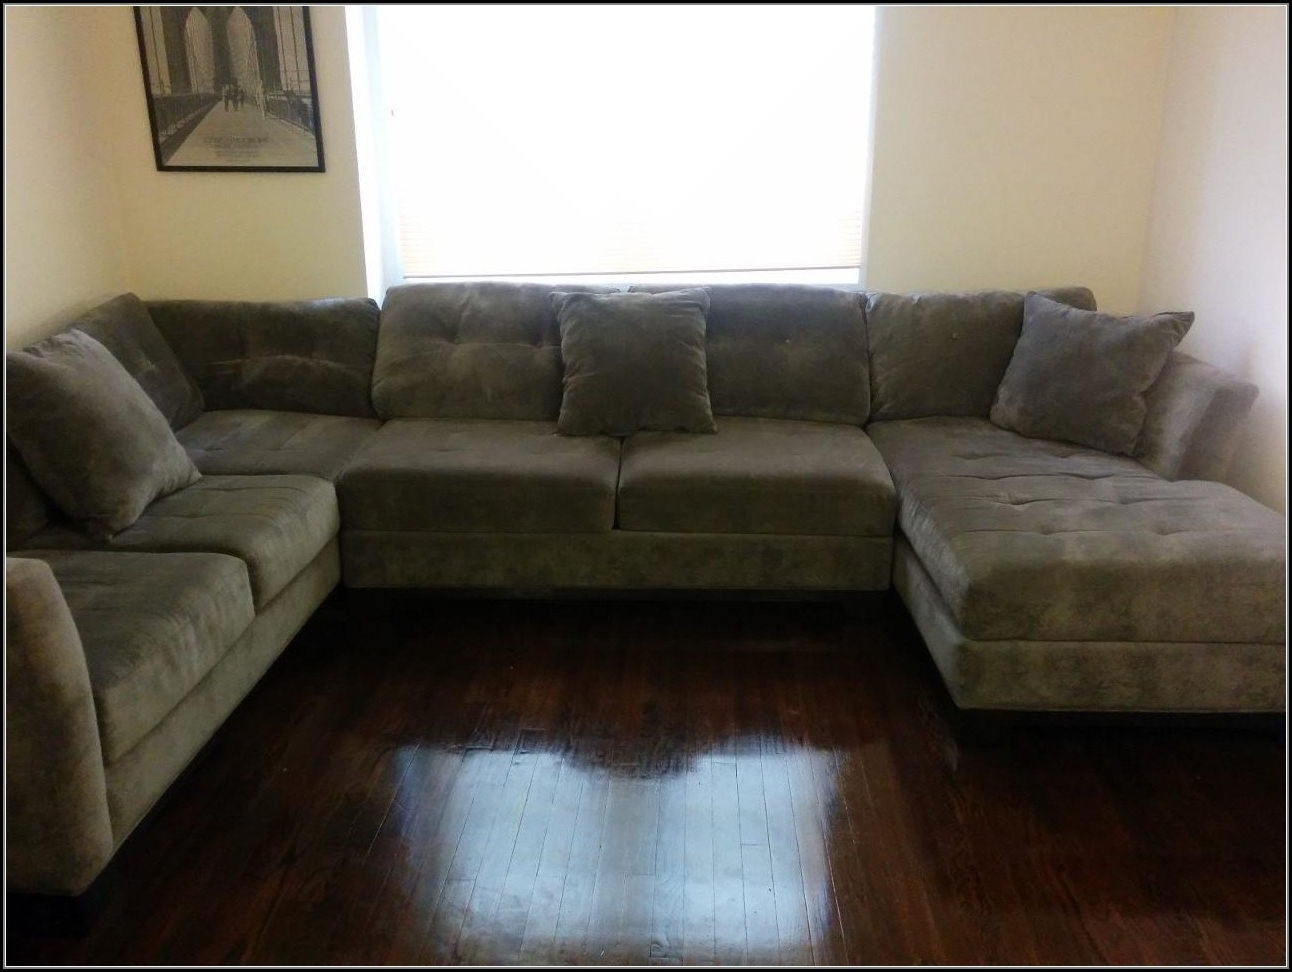 3 Piece Sectional Sofas With Chaise For Most Current 3 Piece Microfiber Sectional Sofa With Chaise – Sofa : Home (View 1 of 15)